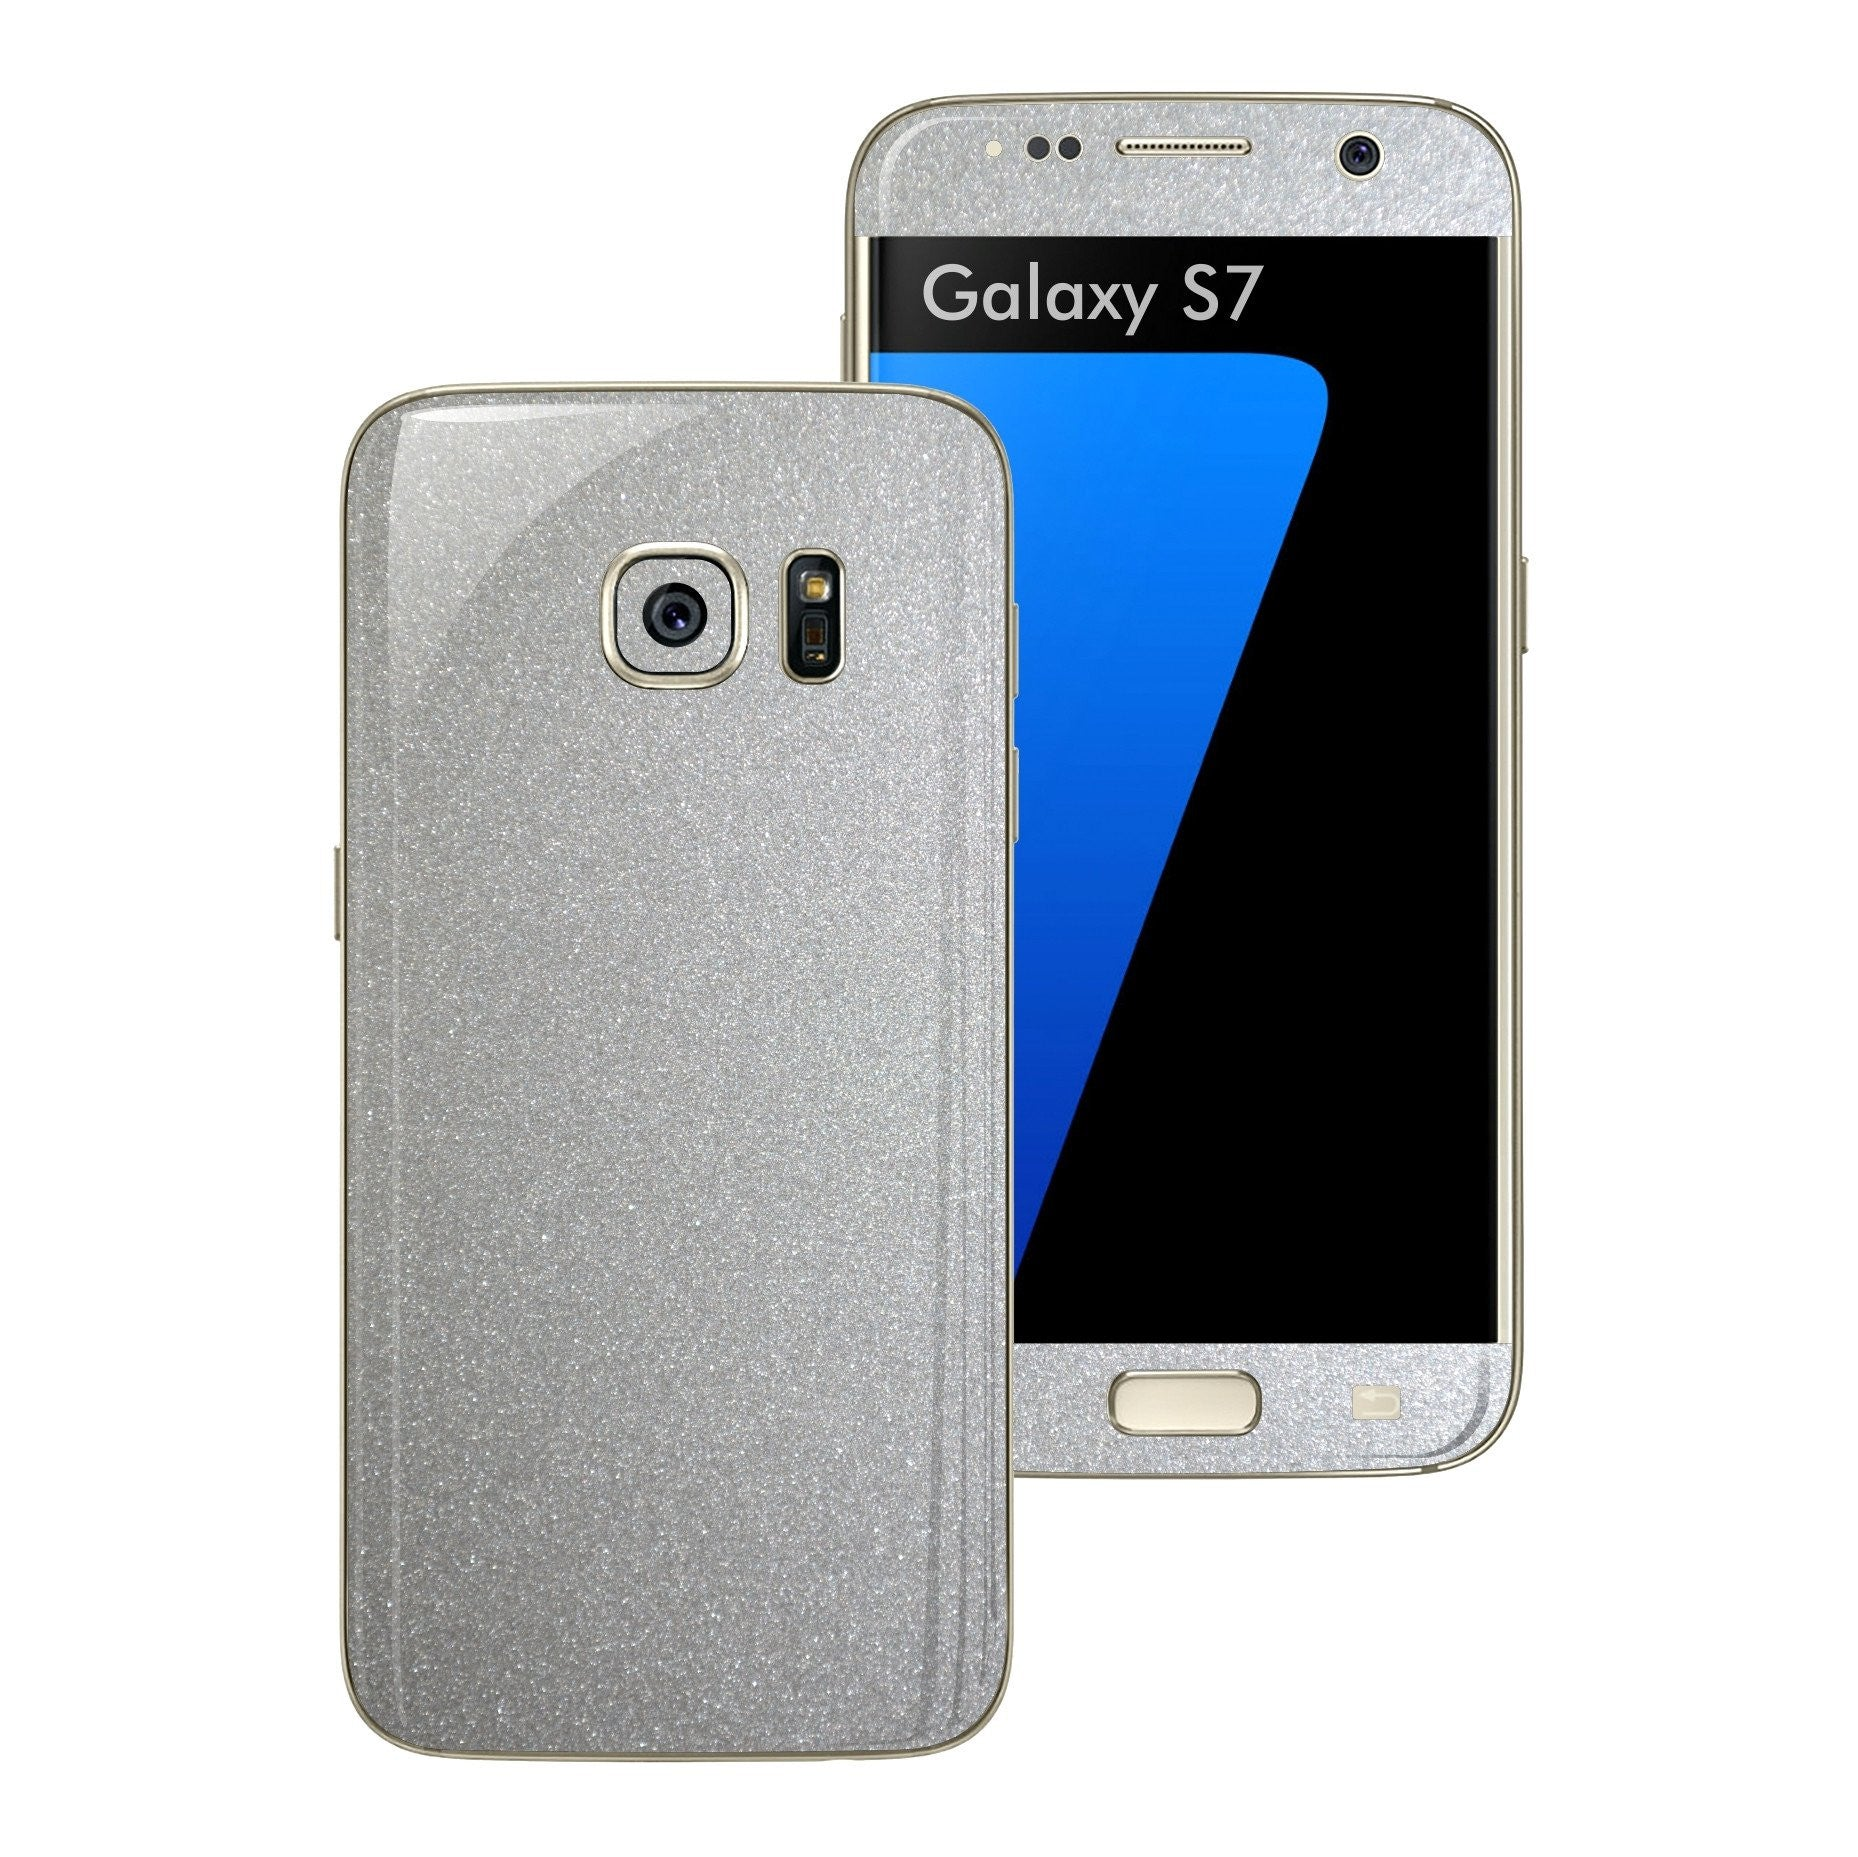 Samsung Galaxy S7 Glossy Silver Metallic Skin Wrap Decal Sticker Cover Protector by EasySkinz